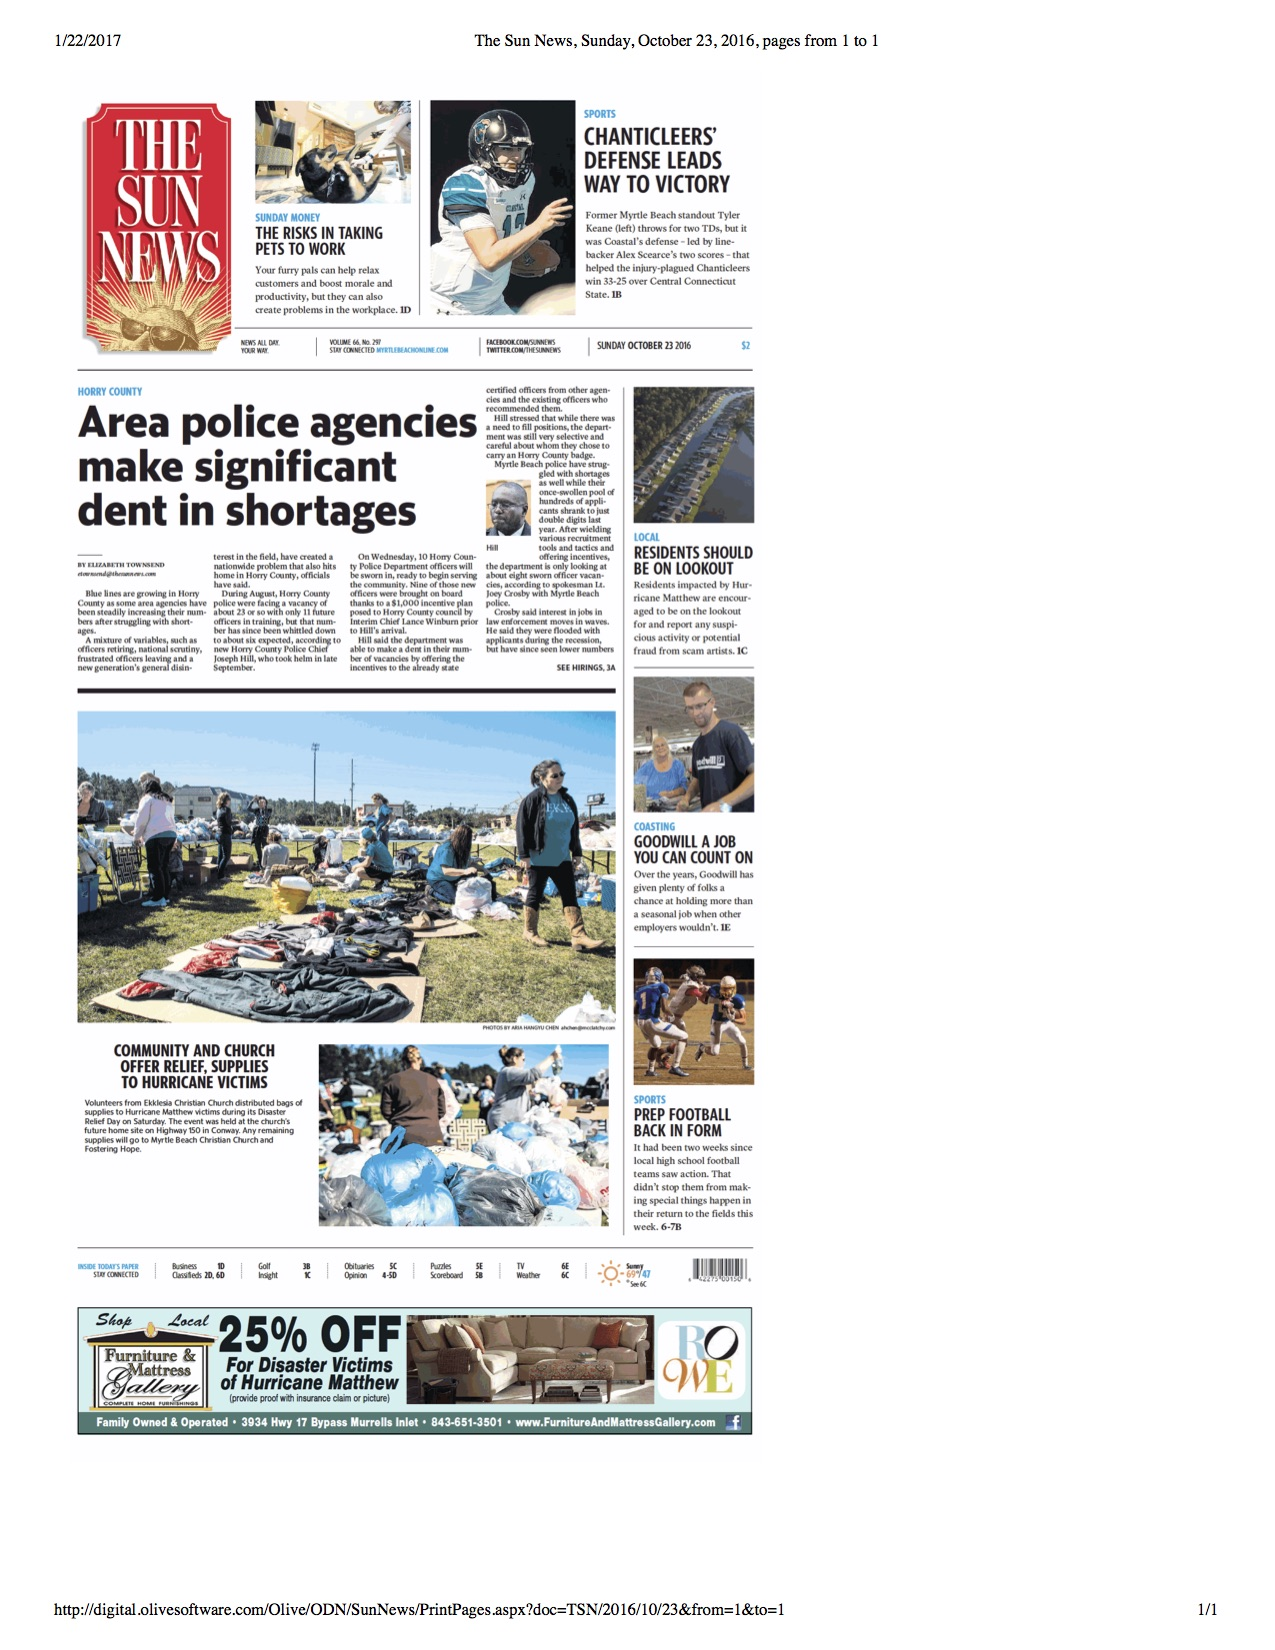 The Sun News, Sunday, October 23, 2016, pages from 1 to 1.jpg